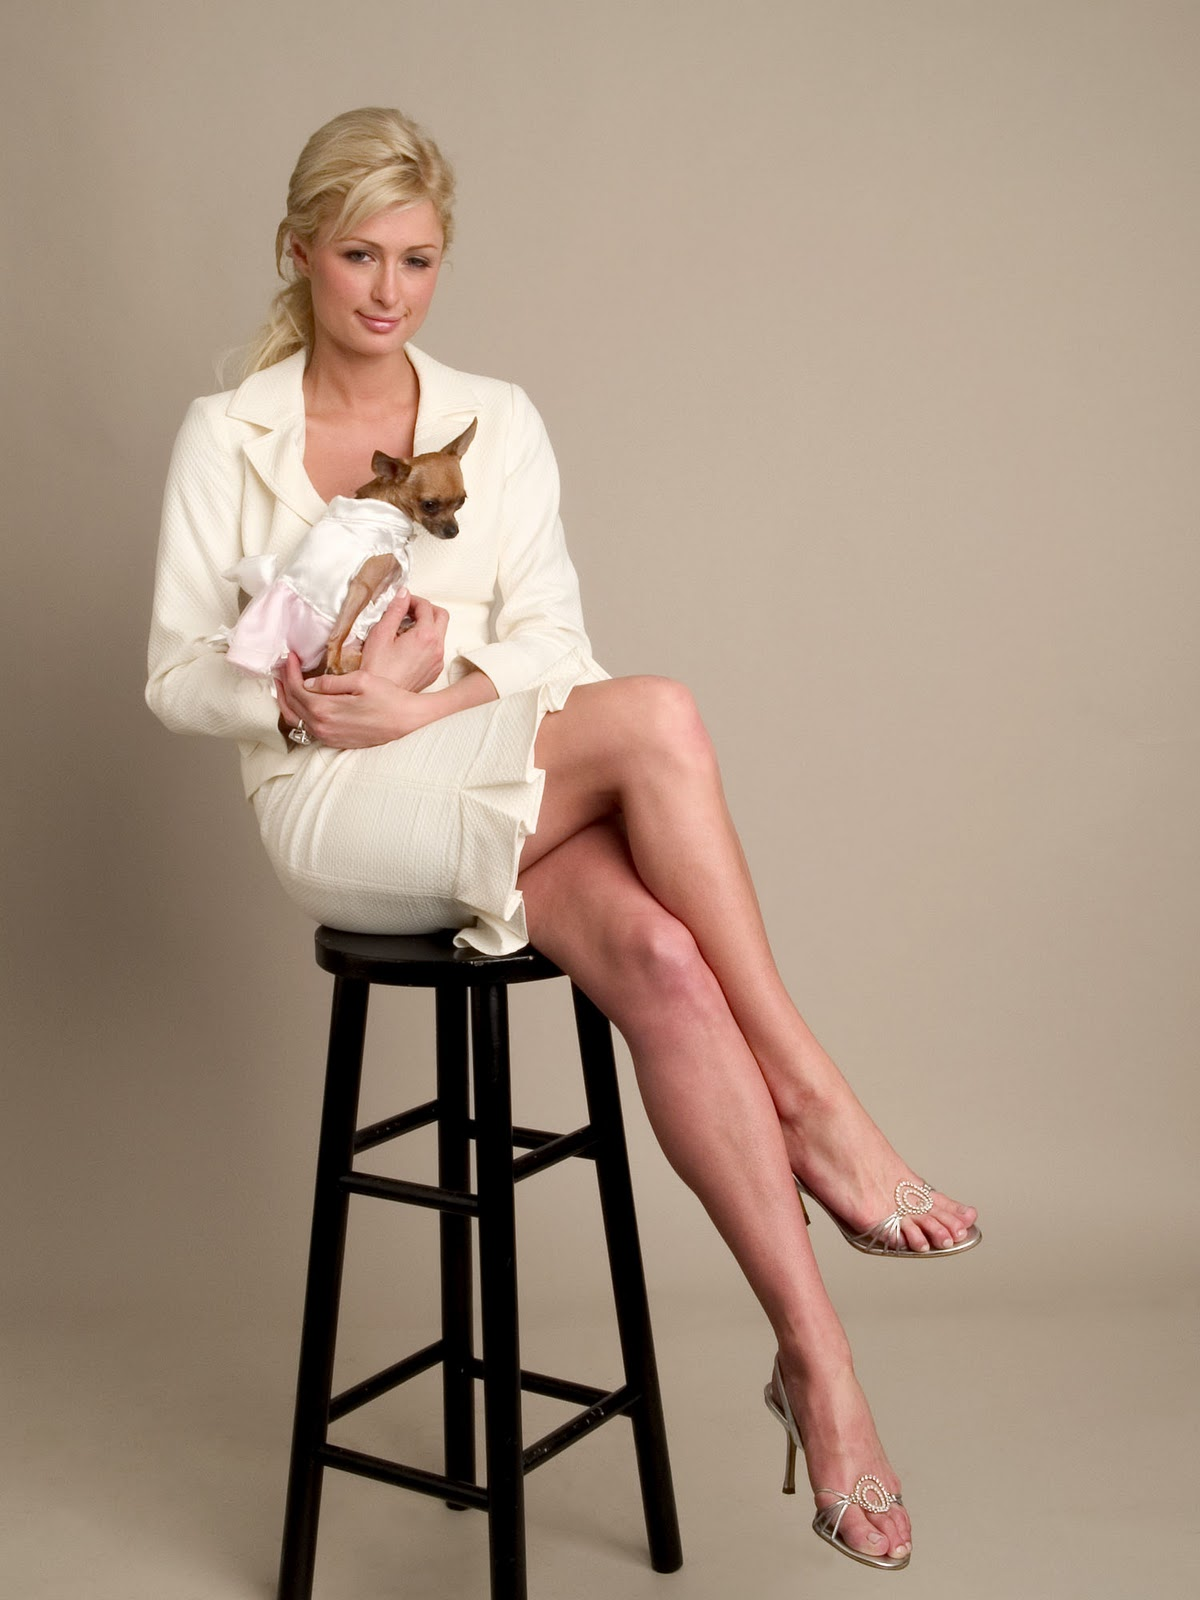 paris hilton hd wallpapers high definition free